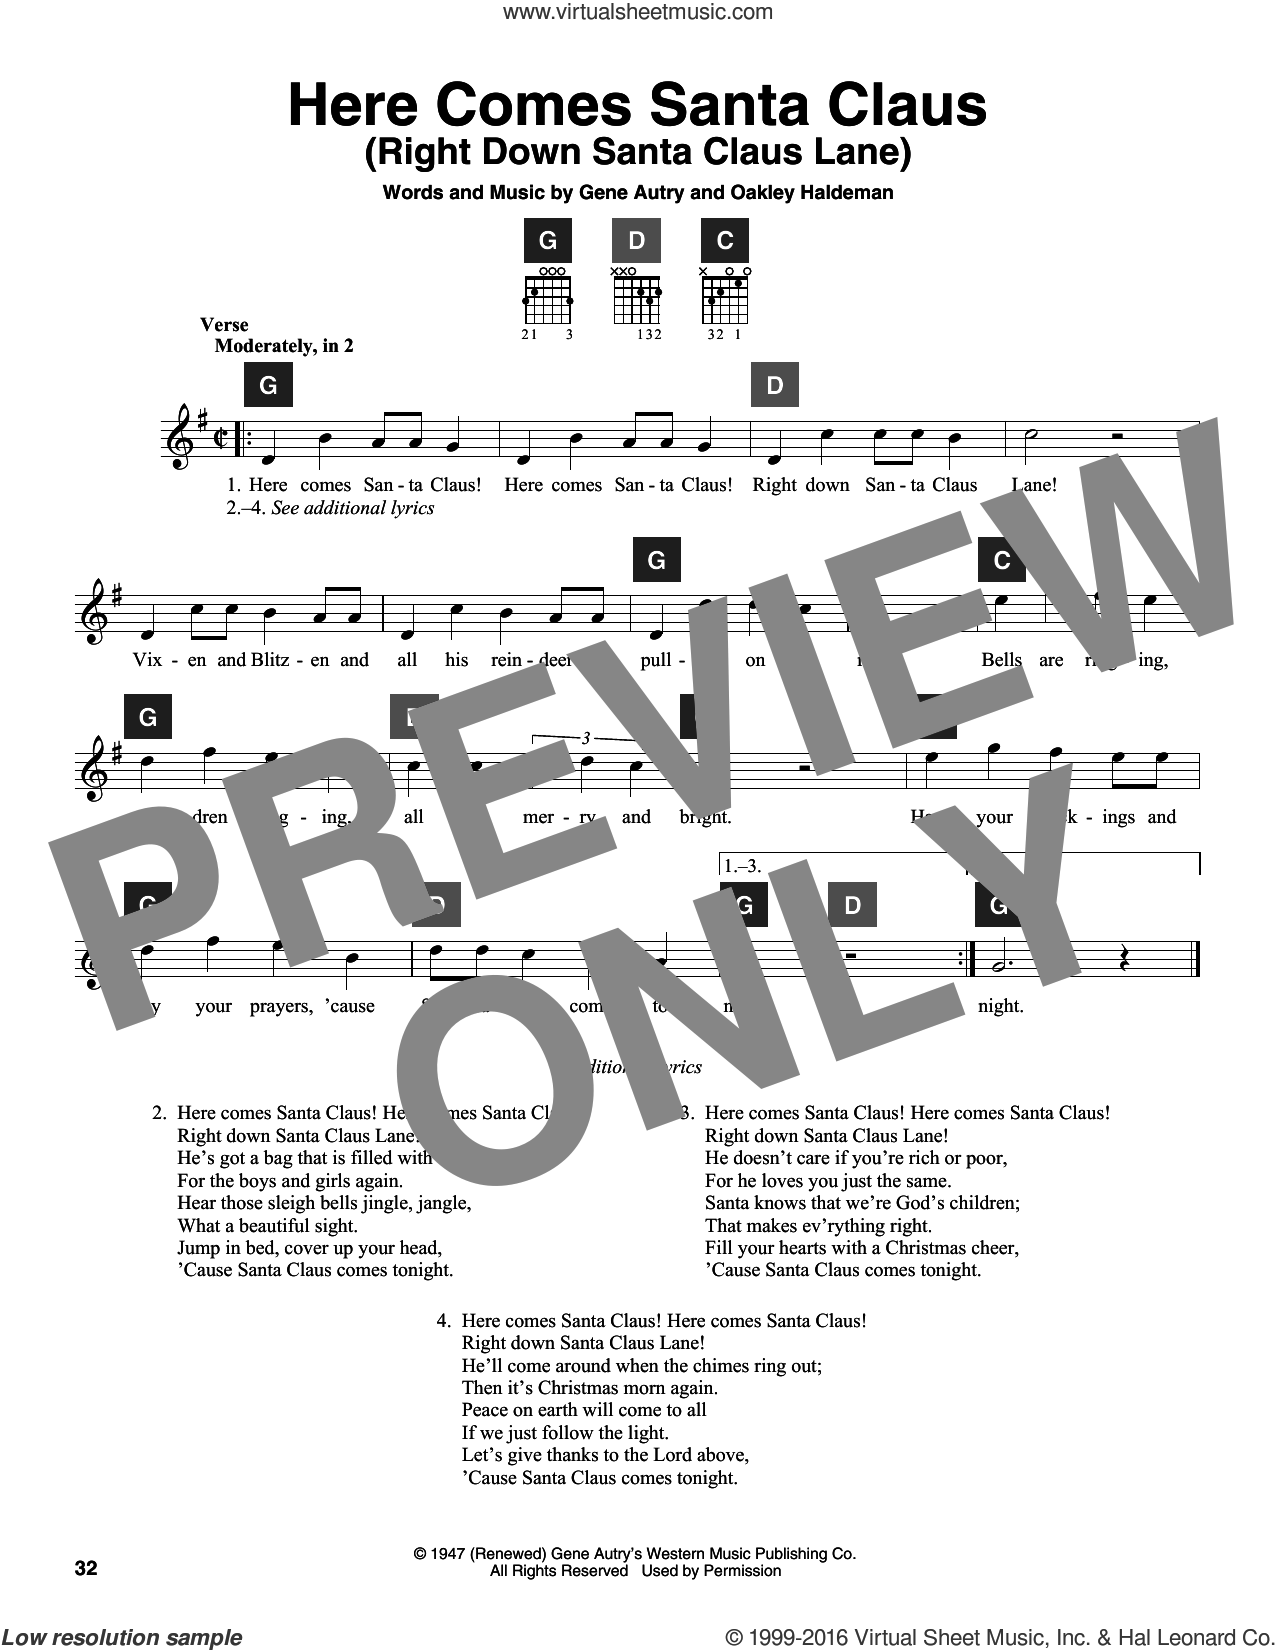 Here Comes Santa Claus (Right Down Santa Claus Lane) sheet music for guitar solo (ChordBuddy system) by Gene Autry, Carpenters, Travis Perry and Oakley Haldeman, intermediate guitar (ChordBuddy system)